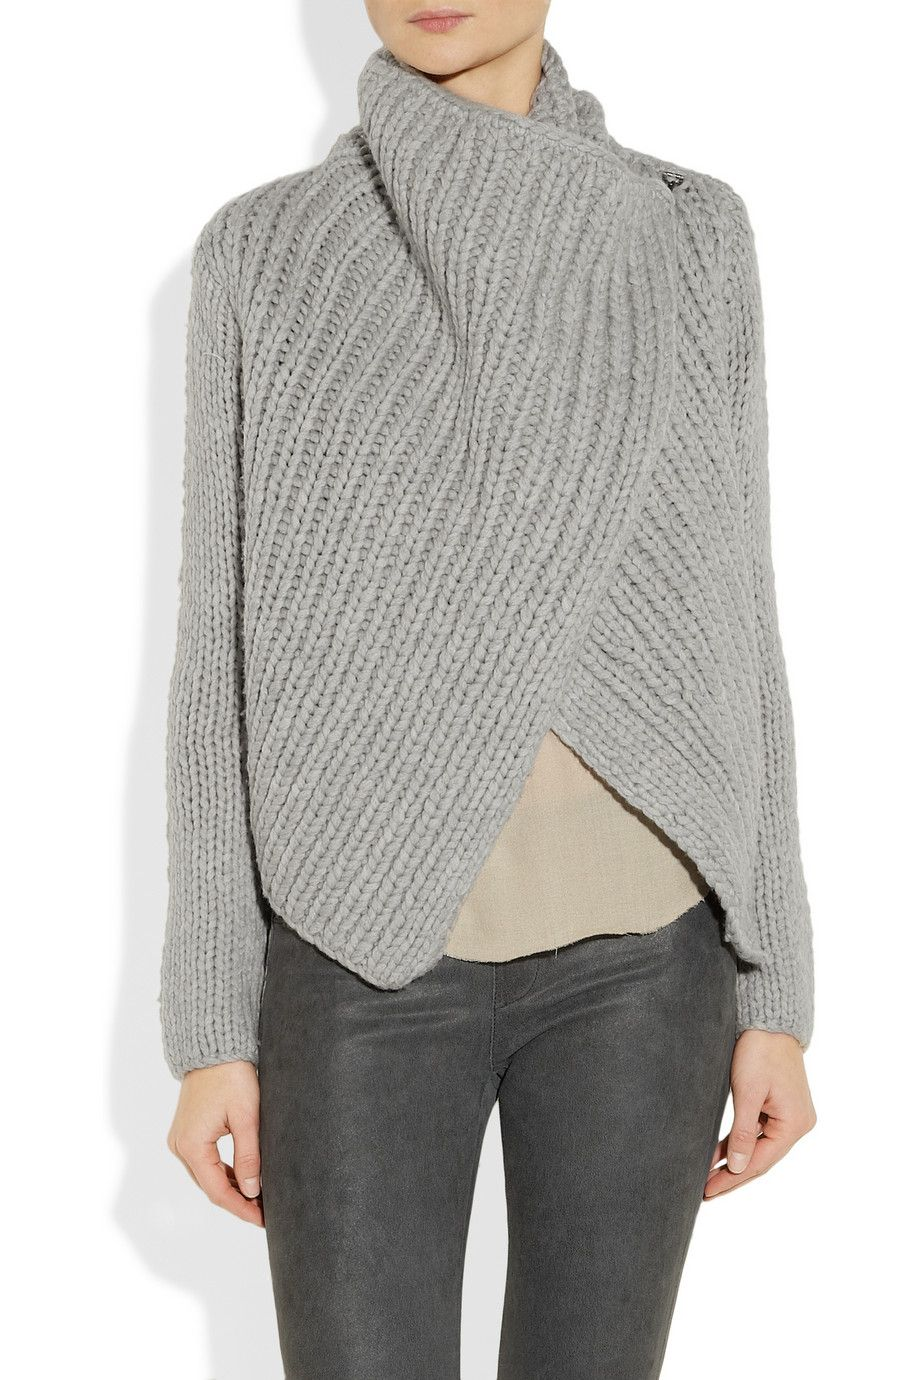 Helmut Lang Bulky rib knit sweater ~ love the easy wrap style! No pattern, un...